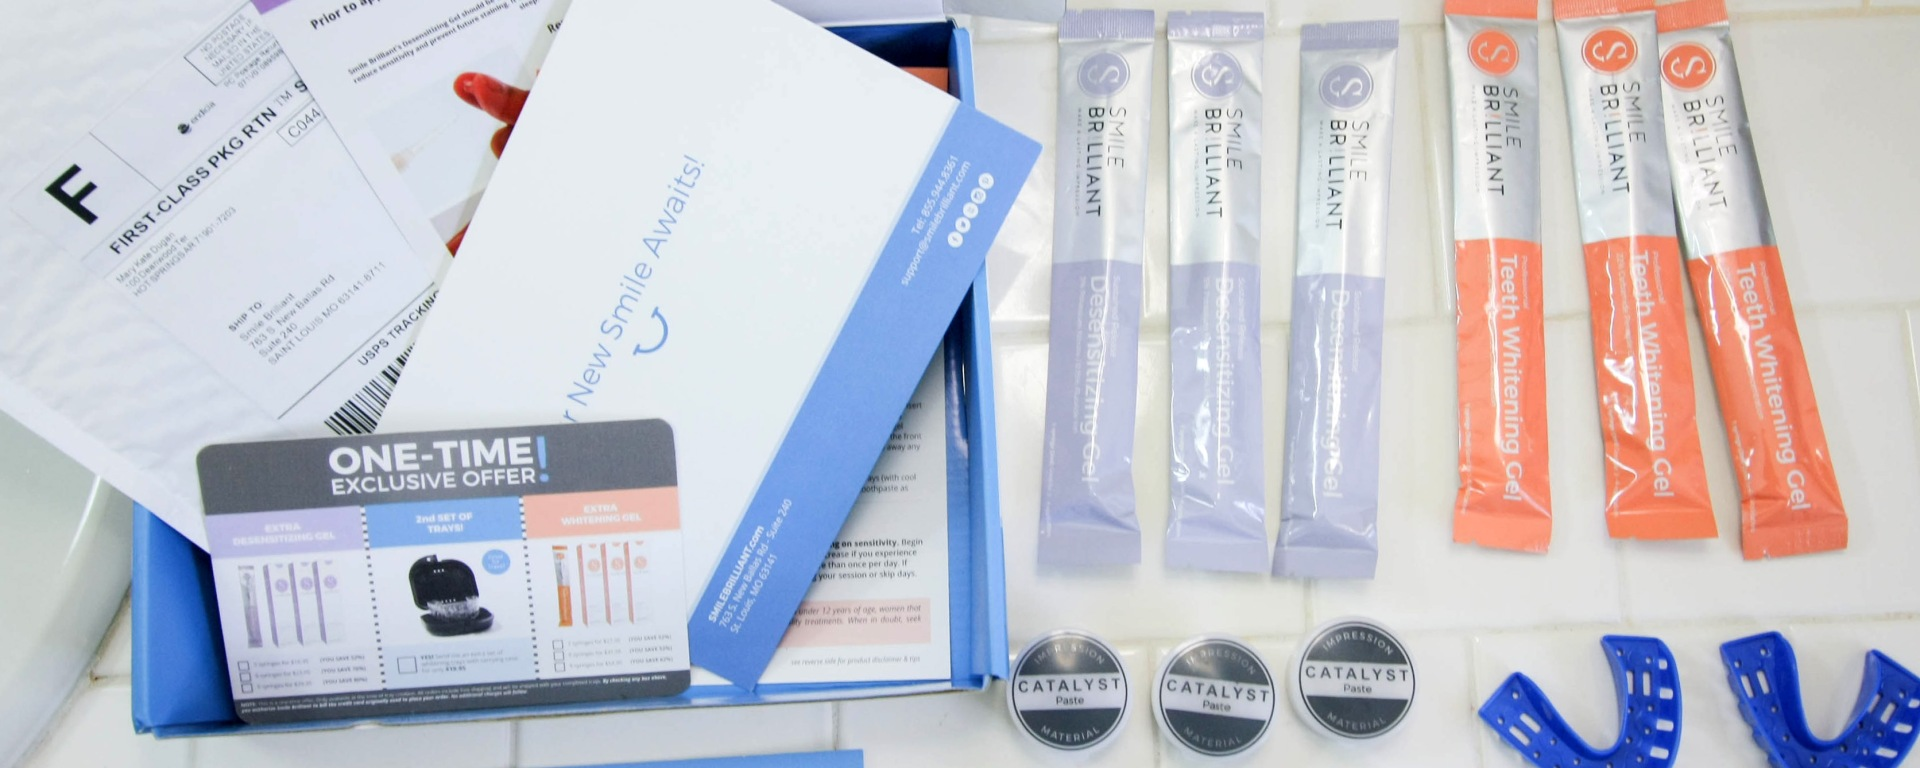 Smile Brilliant Custom Teeth Whitening System Review